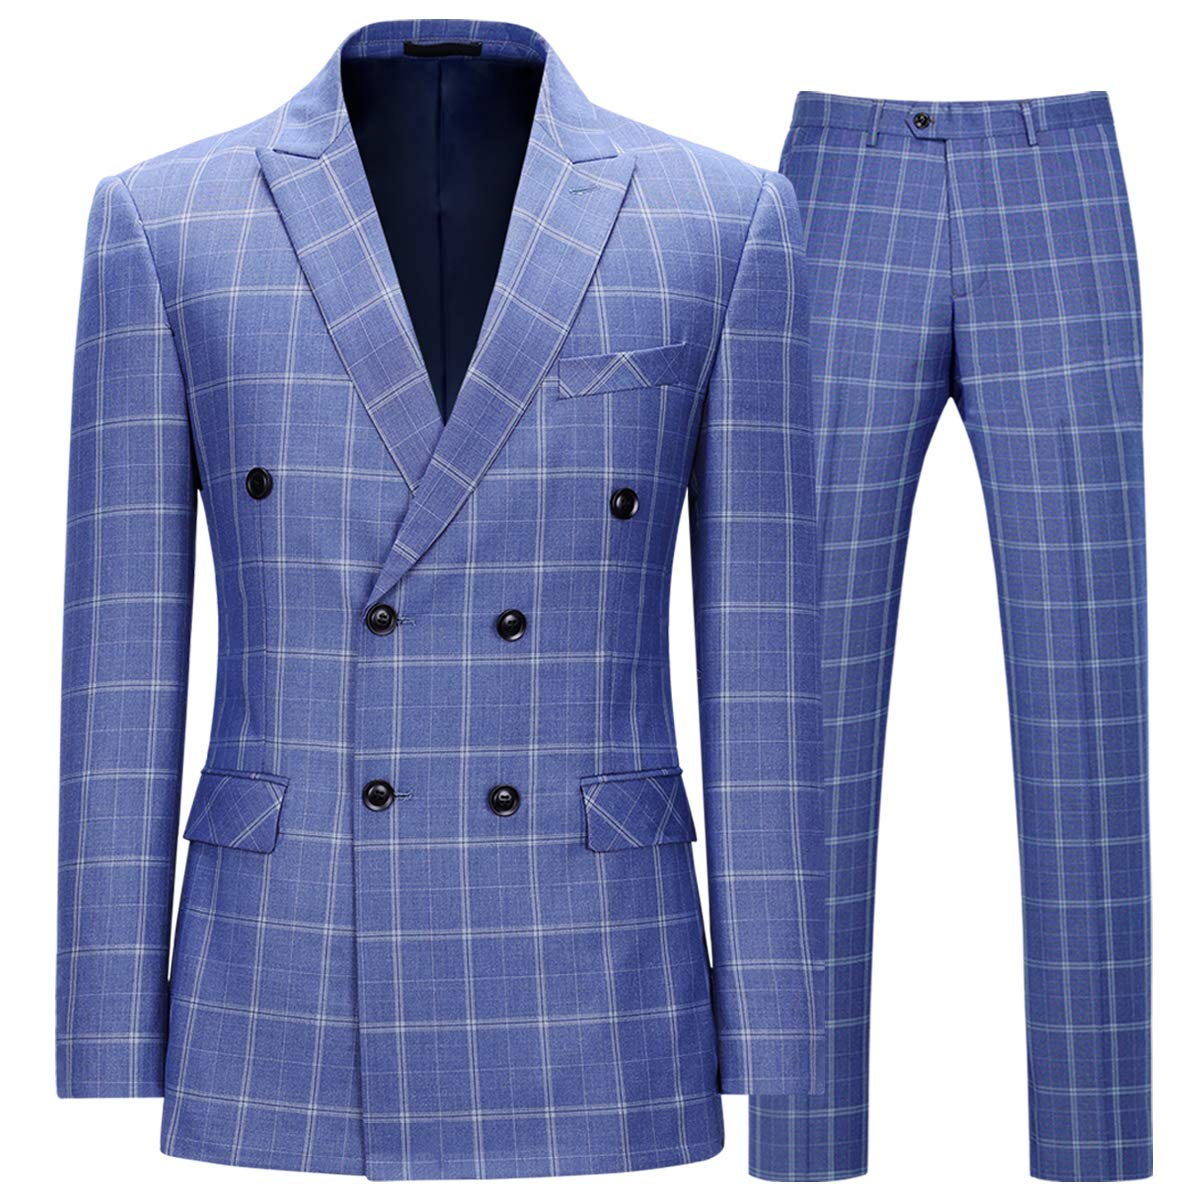 1920s Mens Suits | Gatsby, Gangster, Peaky Blinders Mens 2 Piece Suit Peaked Lapel Slim Fit Plaids Double Breasted Casual Formal Dress Suit Set $89.99 AT vintagedancer.com